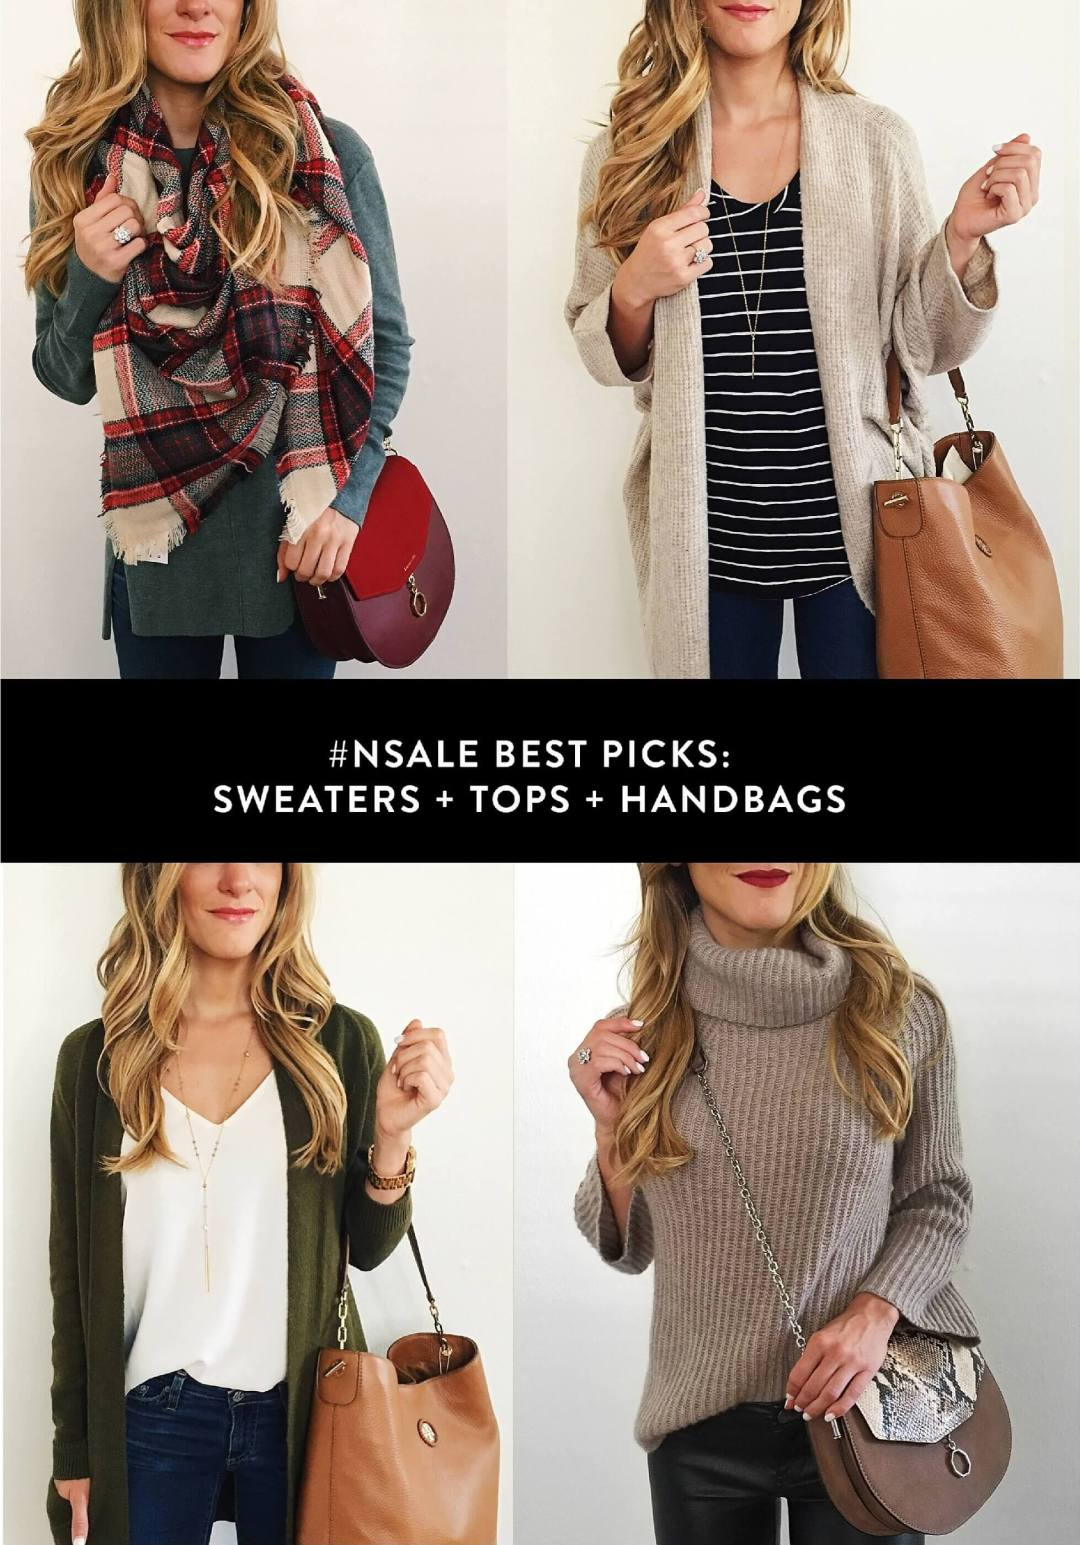 nordstrom anniversary sale 2016 best sweaters, tops and handbags